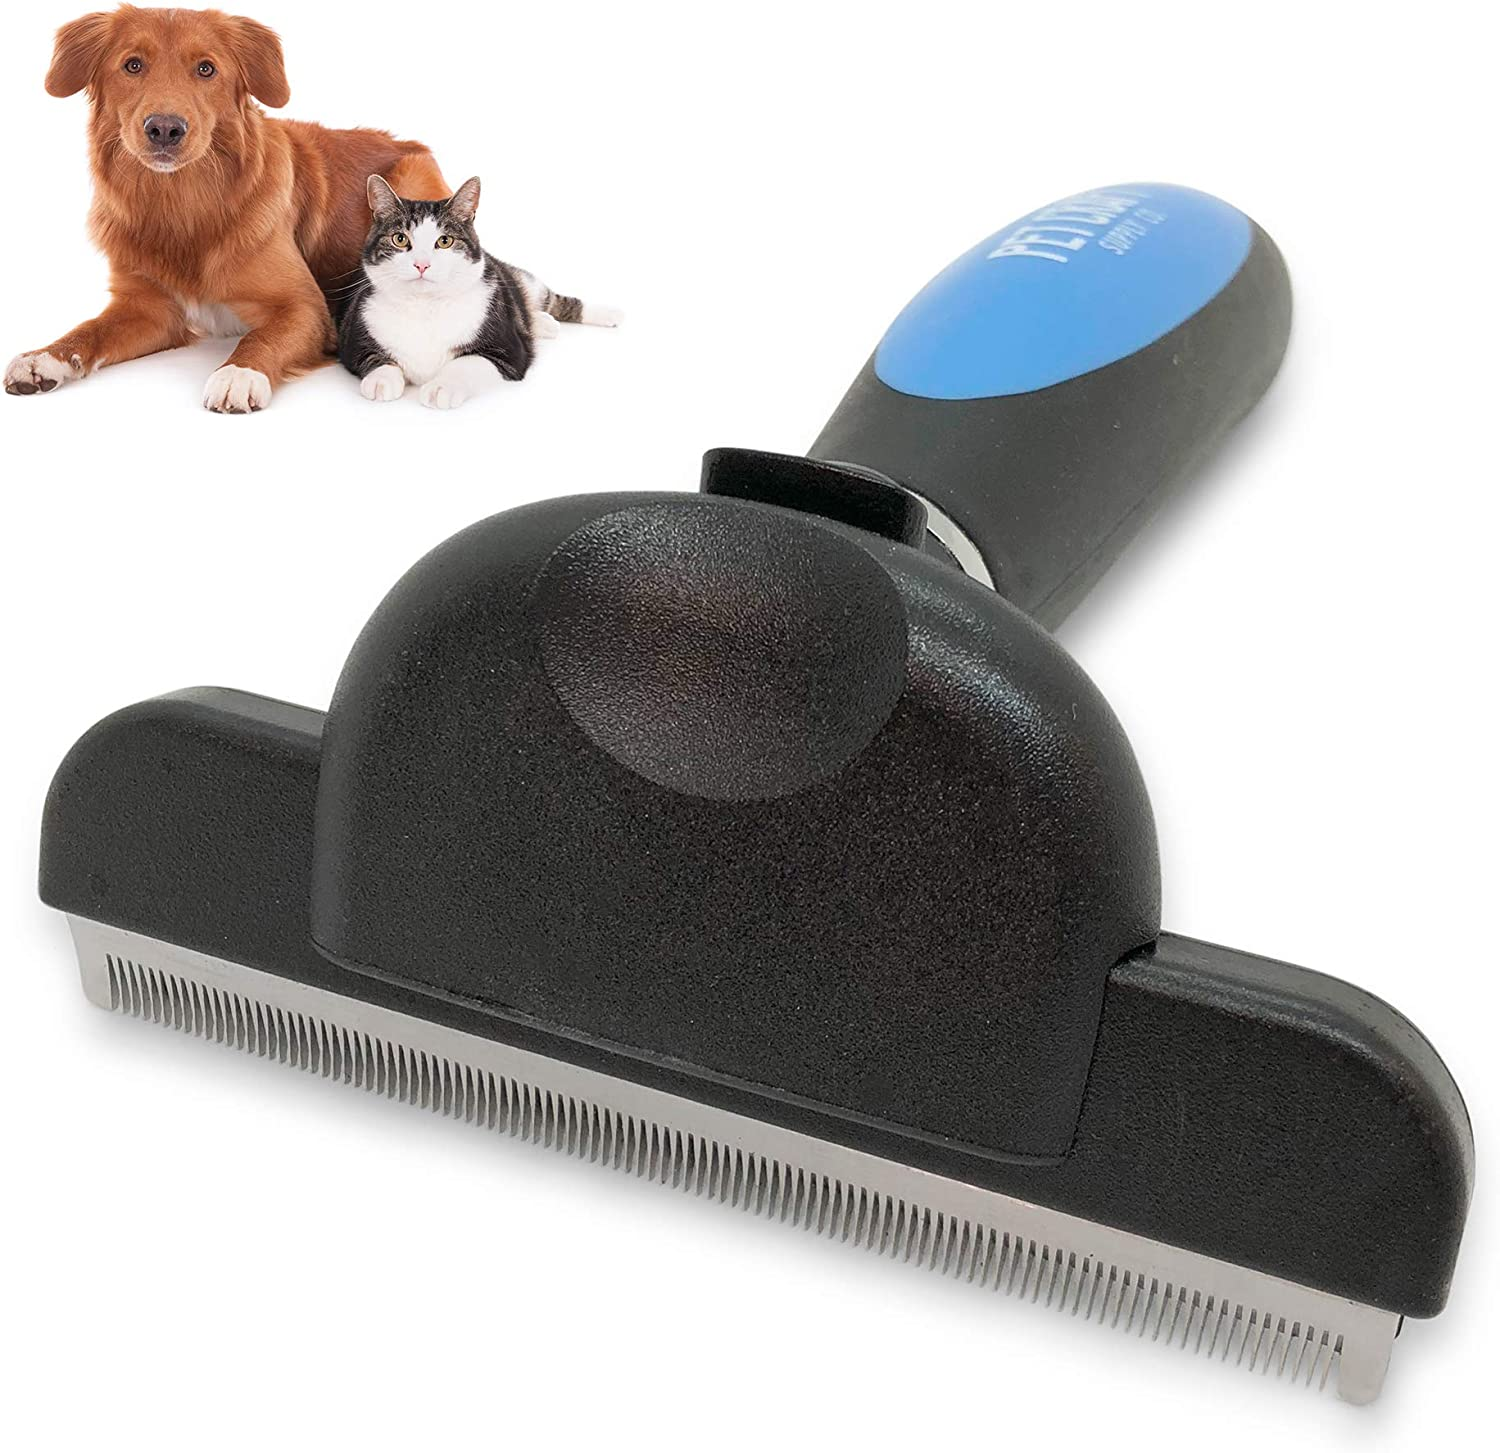 Pet Craft Supply Self-Cleaning Pet Grooming Hair Deshedding Brush Tool Small Dogs Cats Short to Long Hair